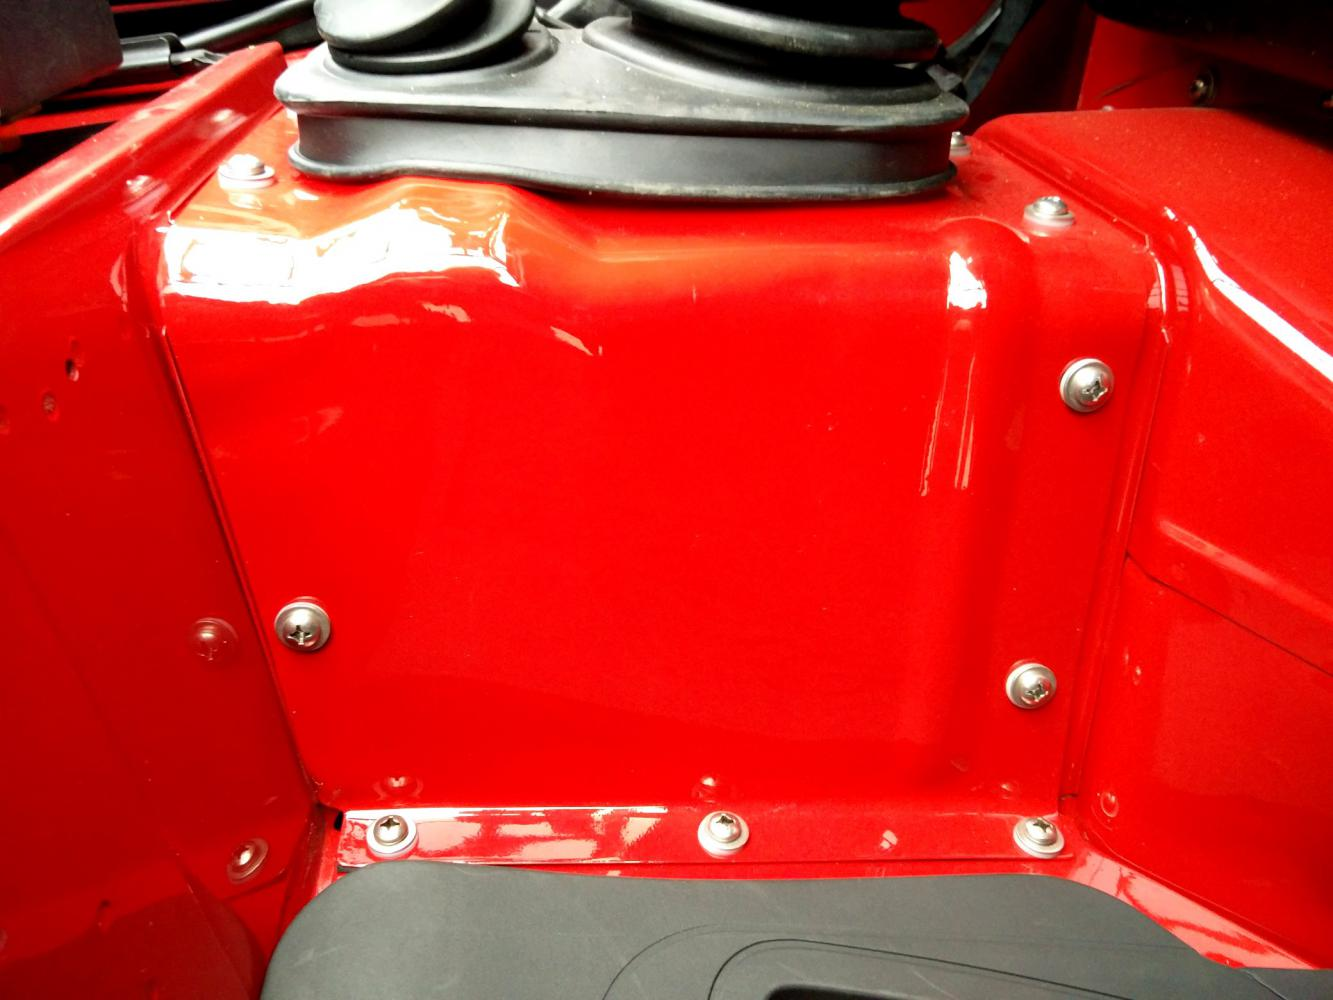 Click image for larger version  Name:1992 LR LHD Defender 90 Red 200 Tdi A day 15 trans tunnel close.jpg Views:57 Size:105.9 KB ID:323801